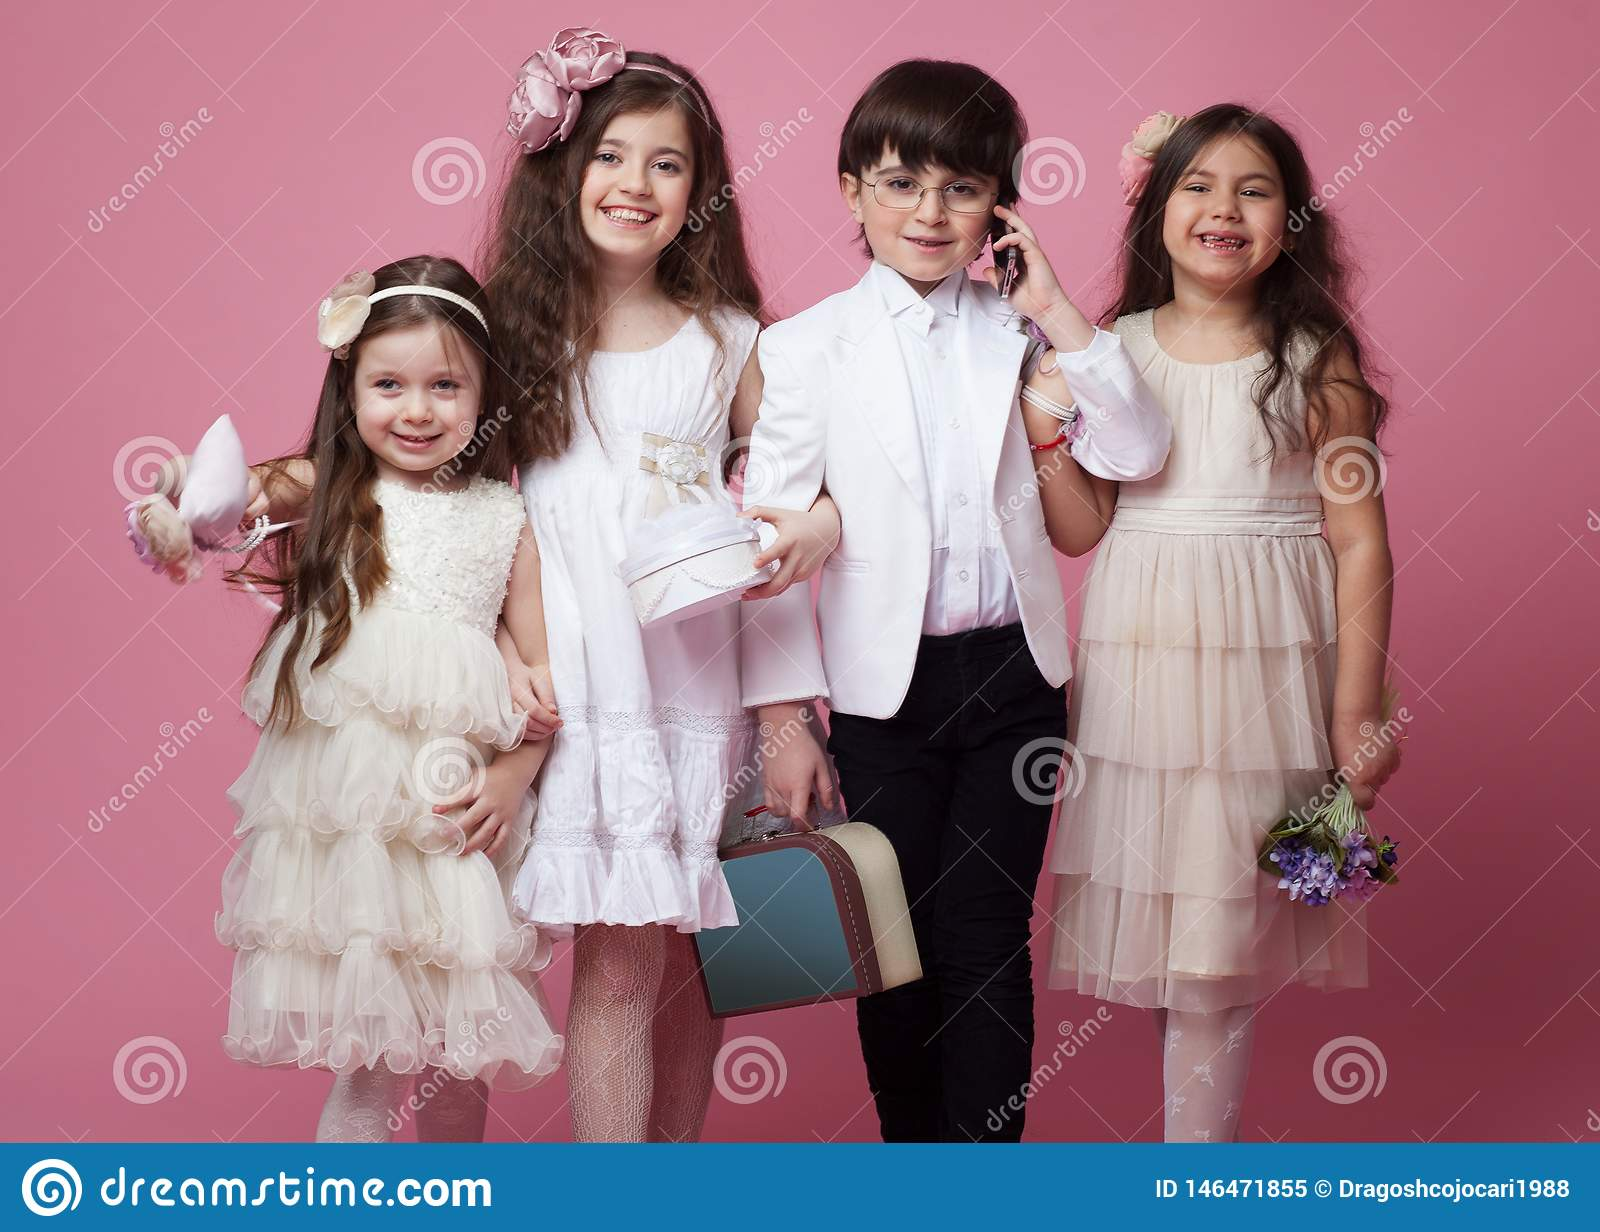 Frontal portrait of a group of happy children dressed in beautiful classic clothing, isolated on pink background.